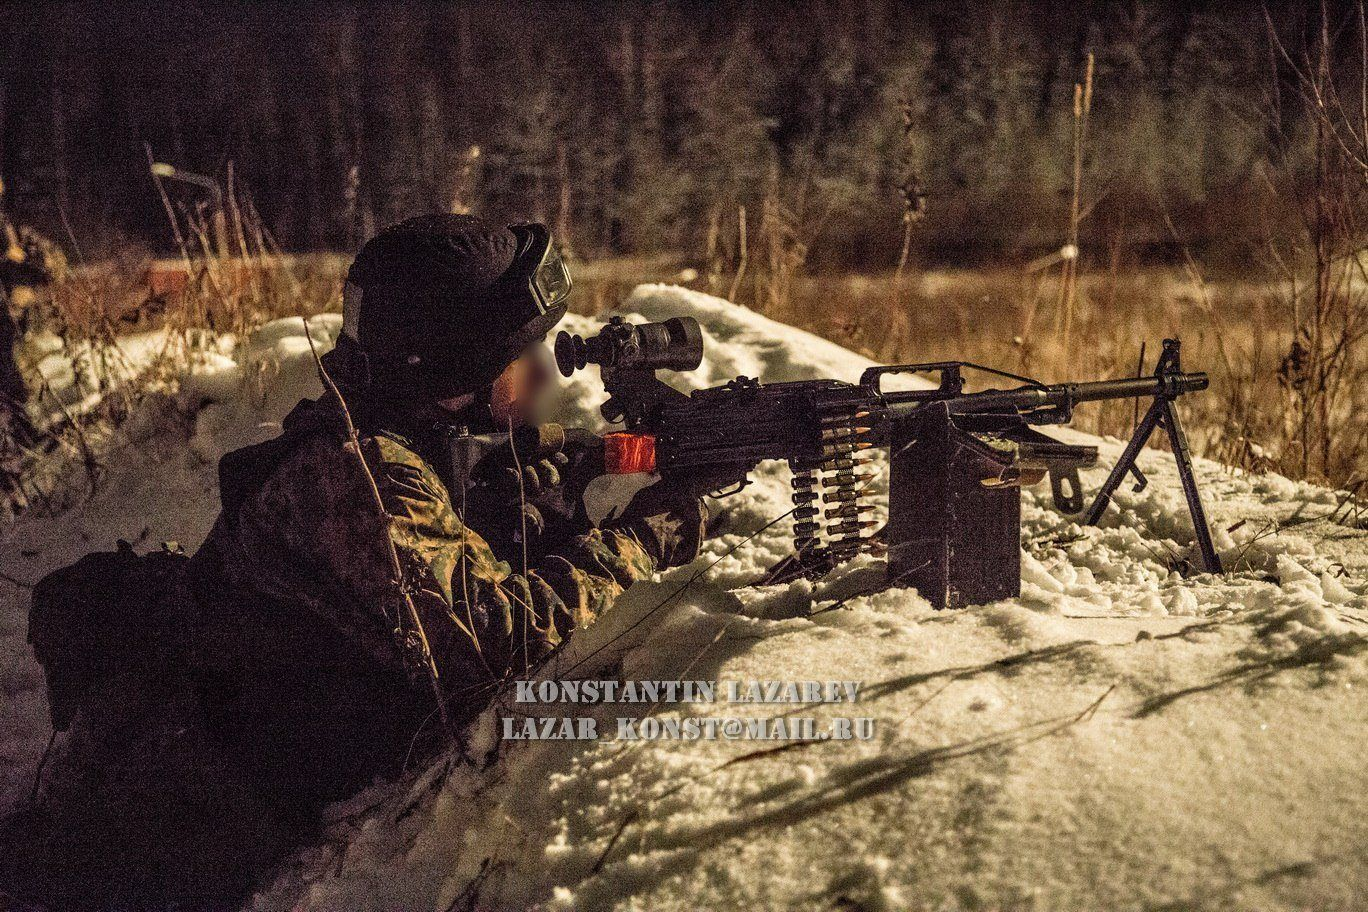 Russian MG Operator | Ariadna Kazak weapons | Guns, Weapons, Russian